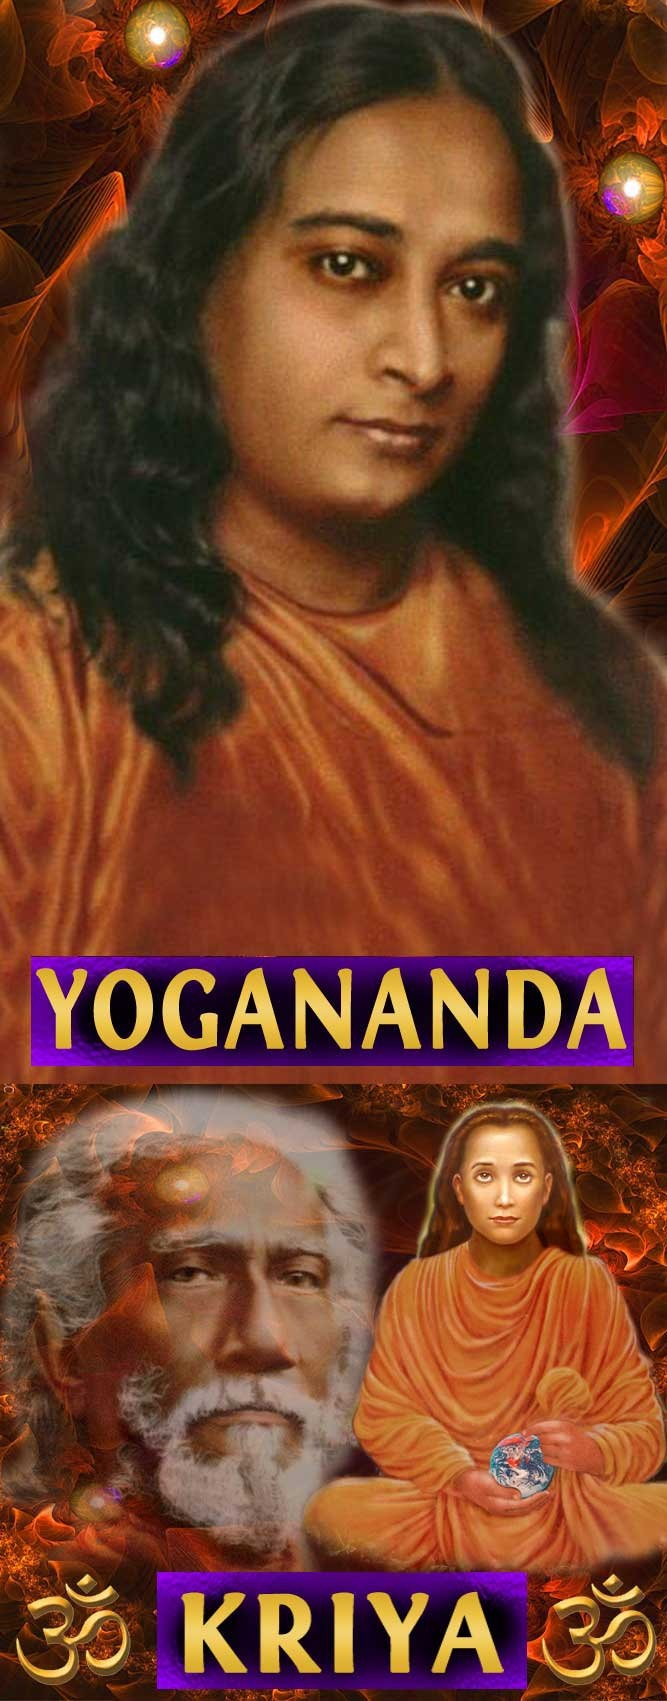 "This has been my profile picture on Facebook, Beloved Teacher Yogananda, well known by most spiritual seekers, ""Autobiography of a Yogi"" is his famous book and I recommend it fully if you have not read it yet, below in the picture on the left is Yogananda's guru Sri Yukteswar and on the right side you see Mahavatar Babaji , Mahavatar Babaji is an Ascended Master, he is the founder of kriya yoga."